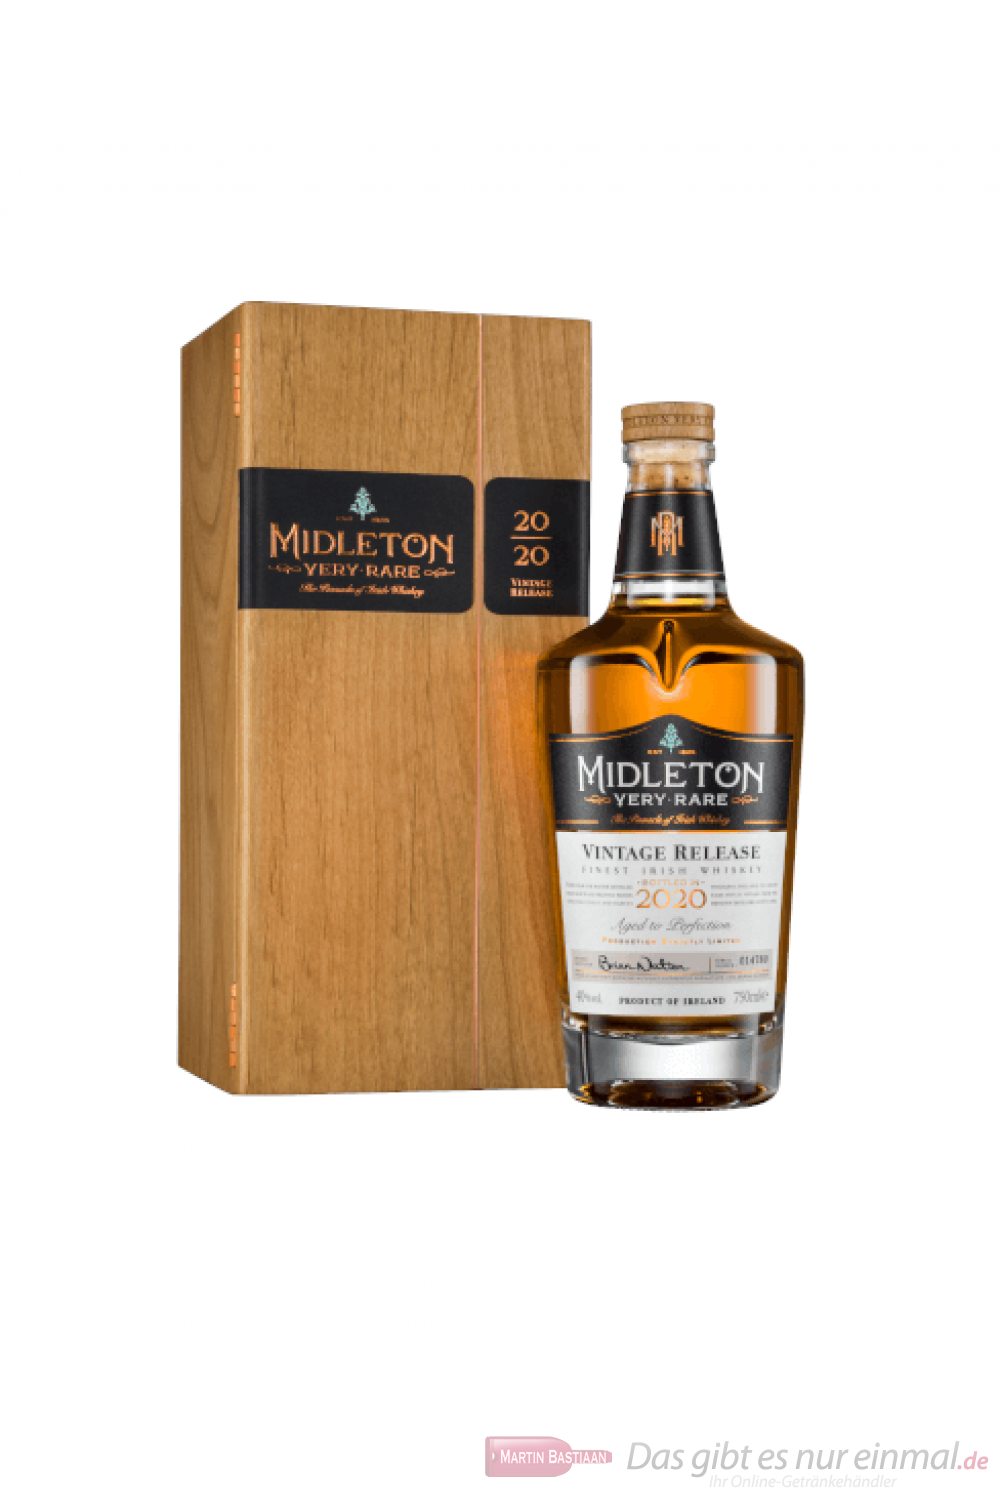 Midleton Very Rare 2020 Irish Whisky 0,7l